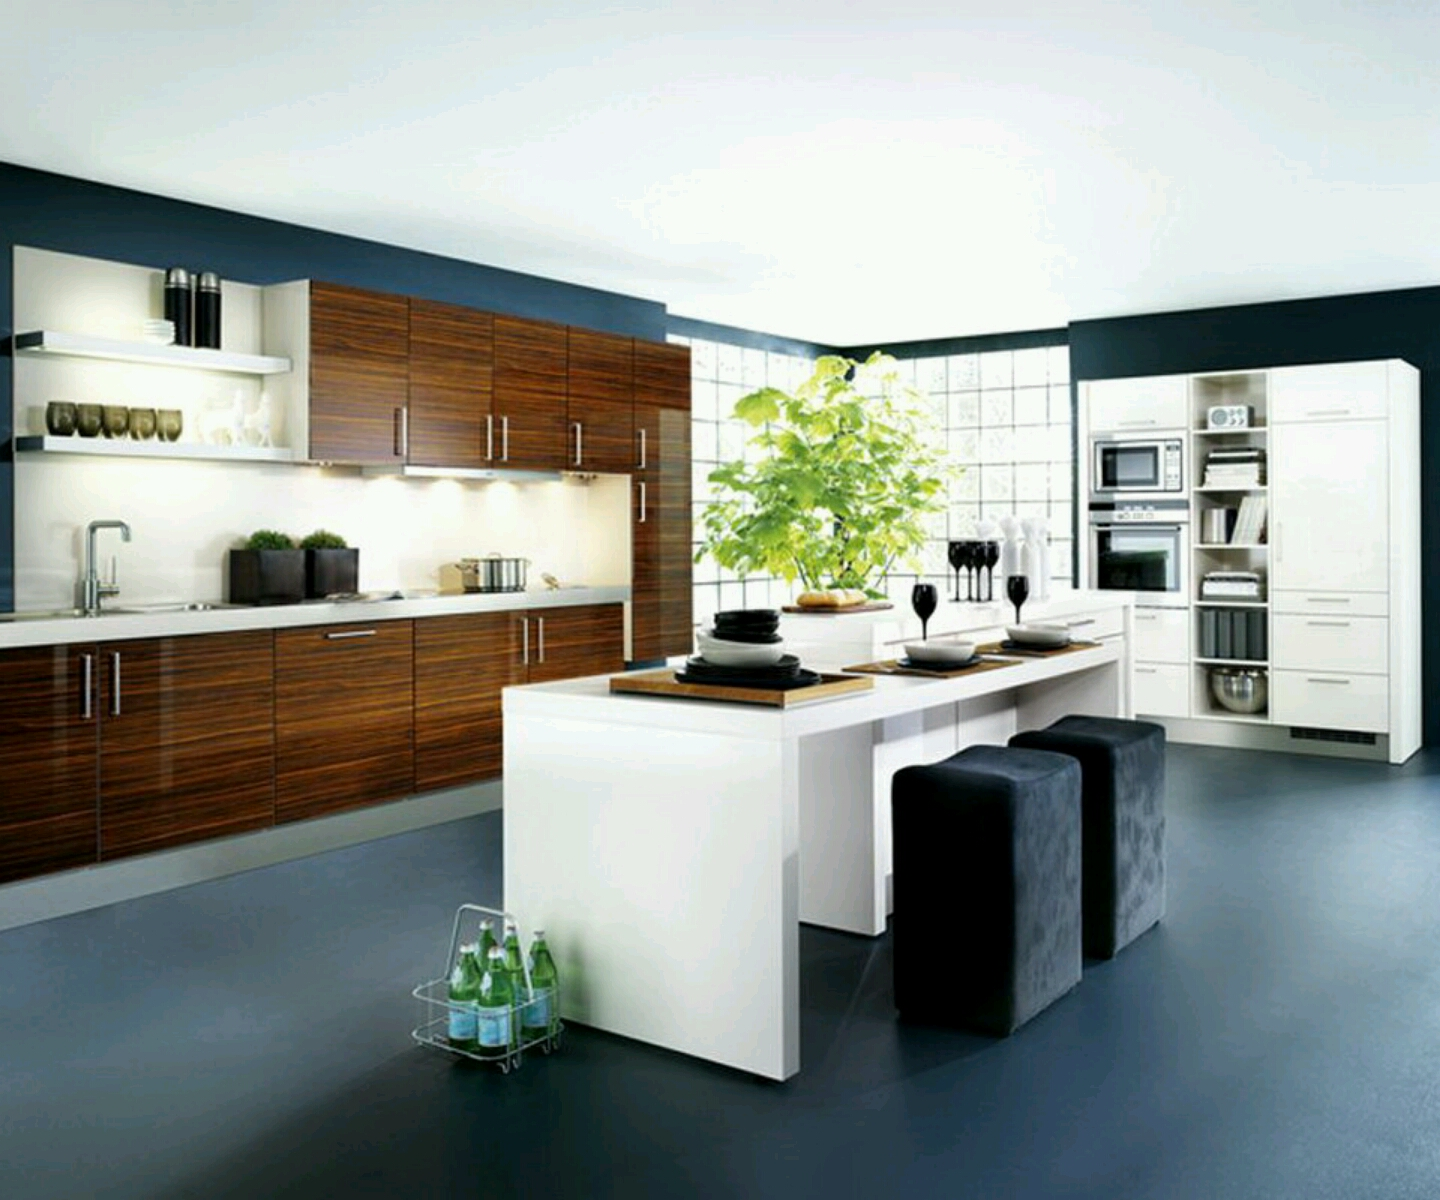 New home designs latest kitchen cabinets designs modern homes - Modern kitchen for small house ...